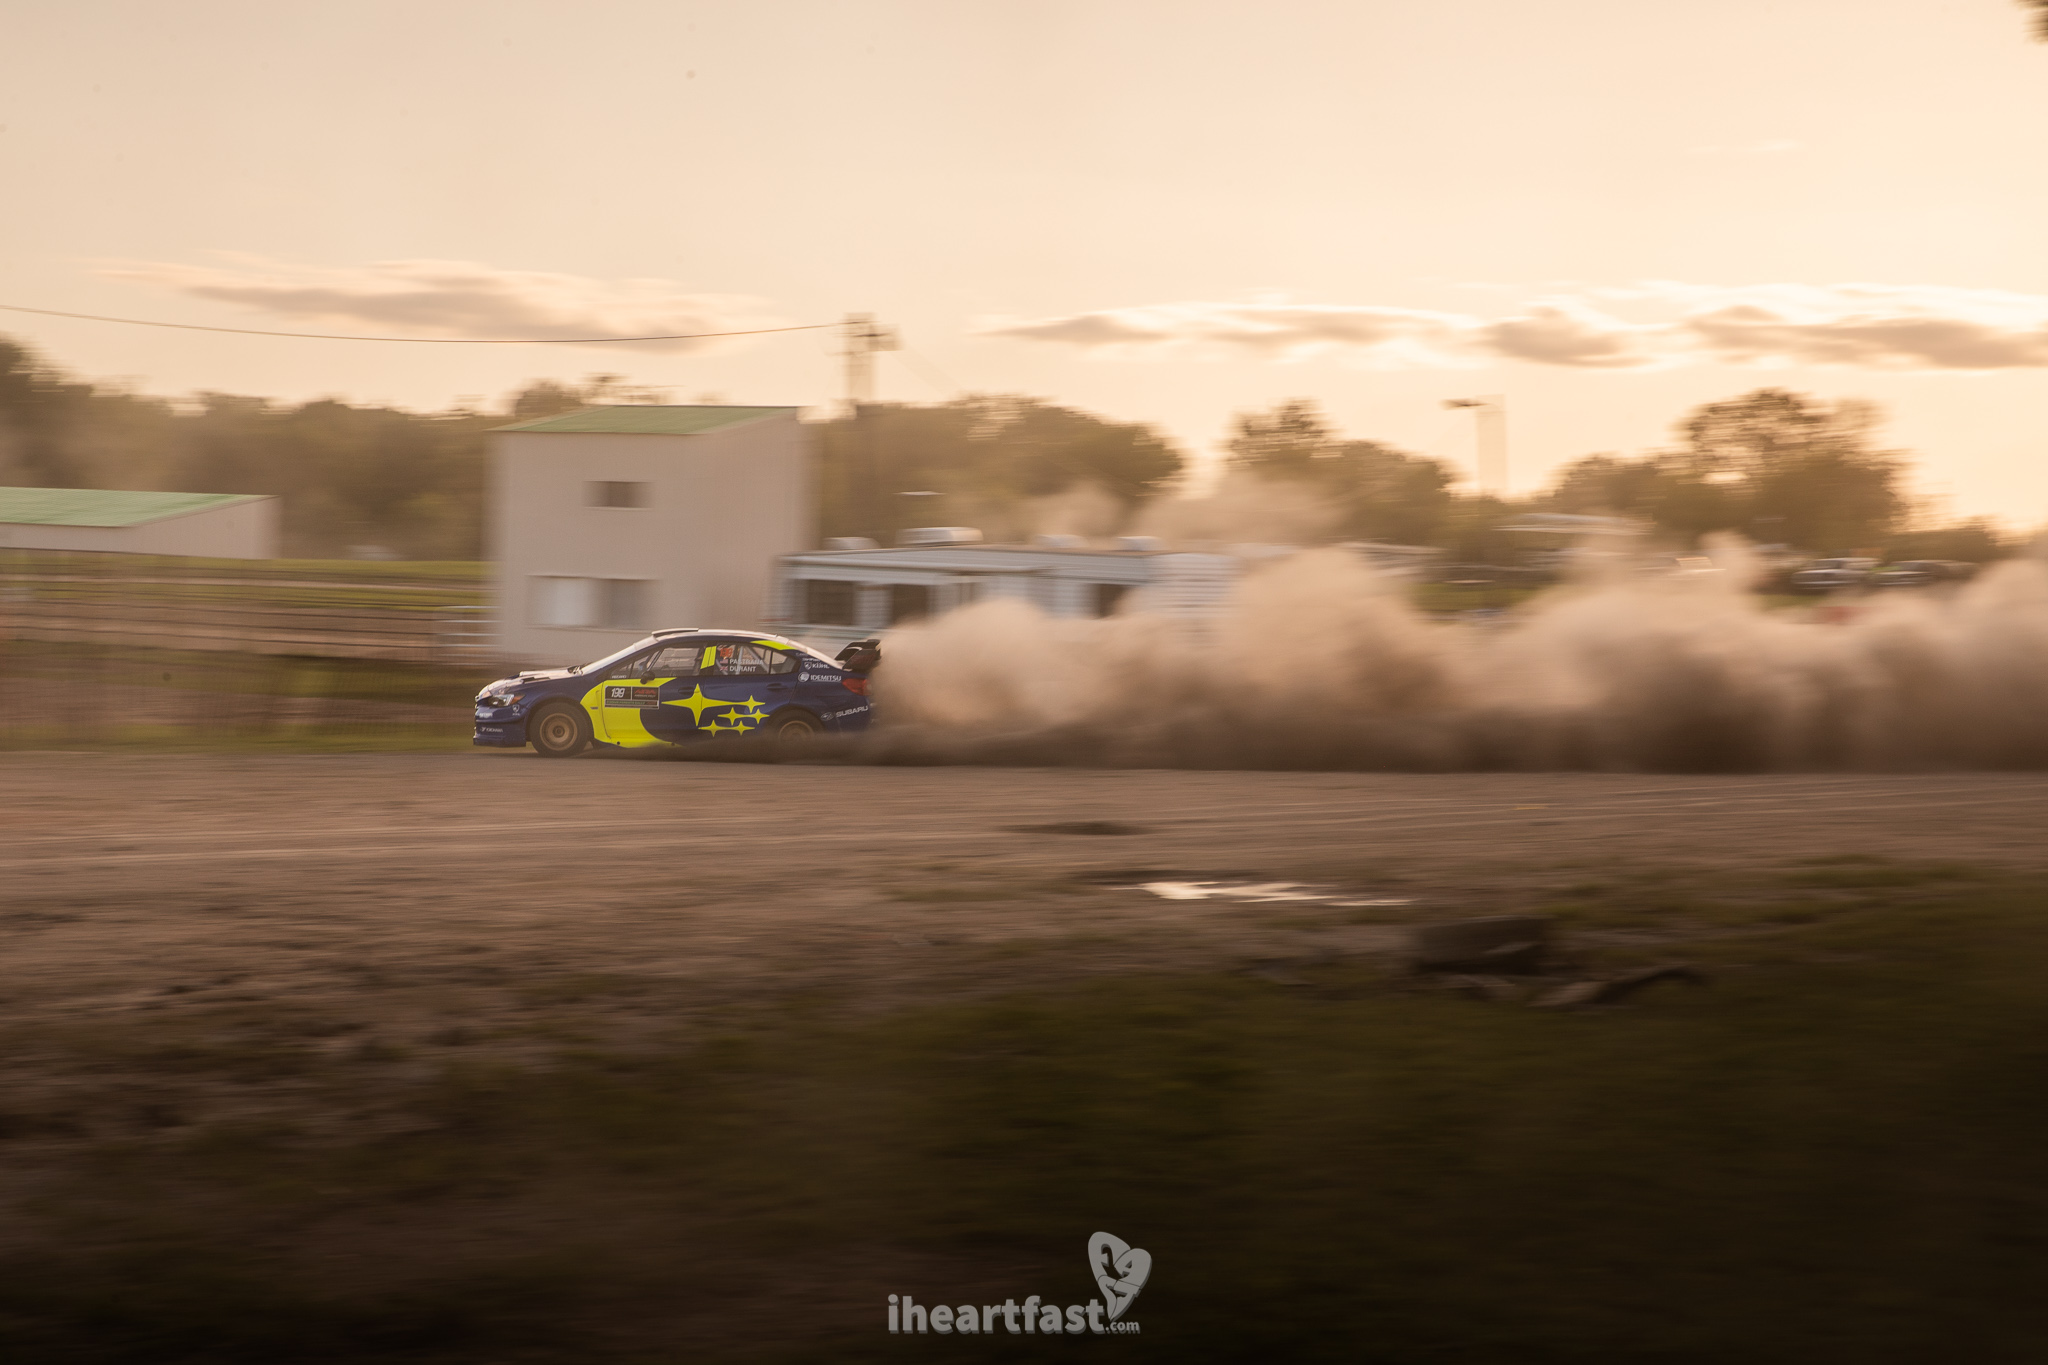 Travis Pastrana slides his Subaru Motorsports USA car around the Fairgrounds at Ojibwe Forests Rally